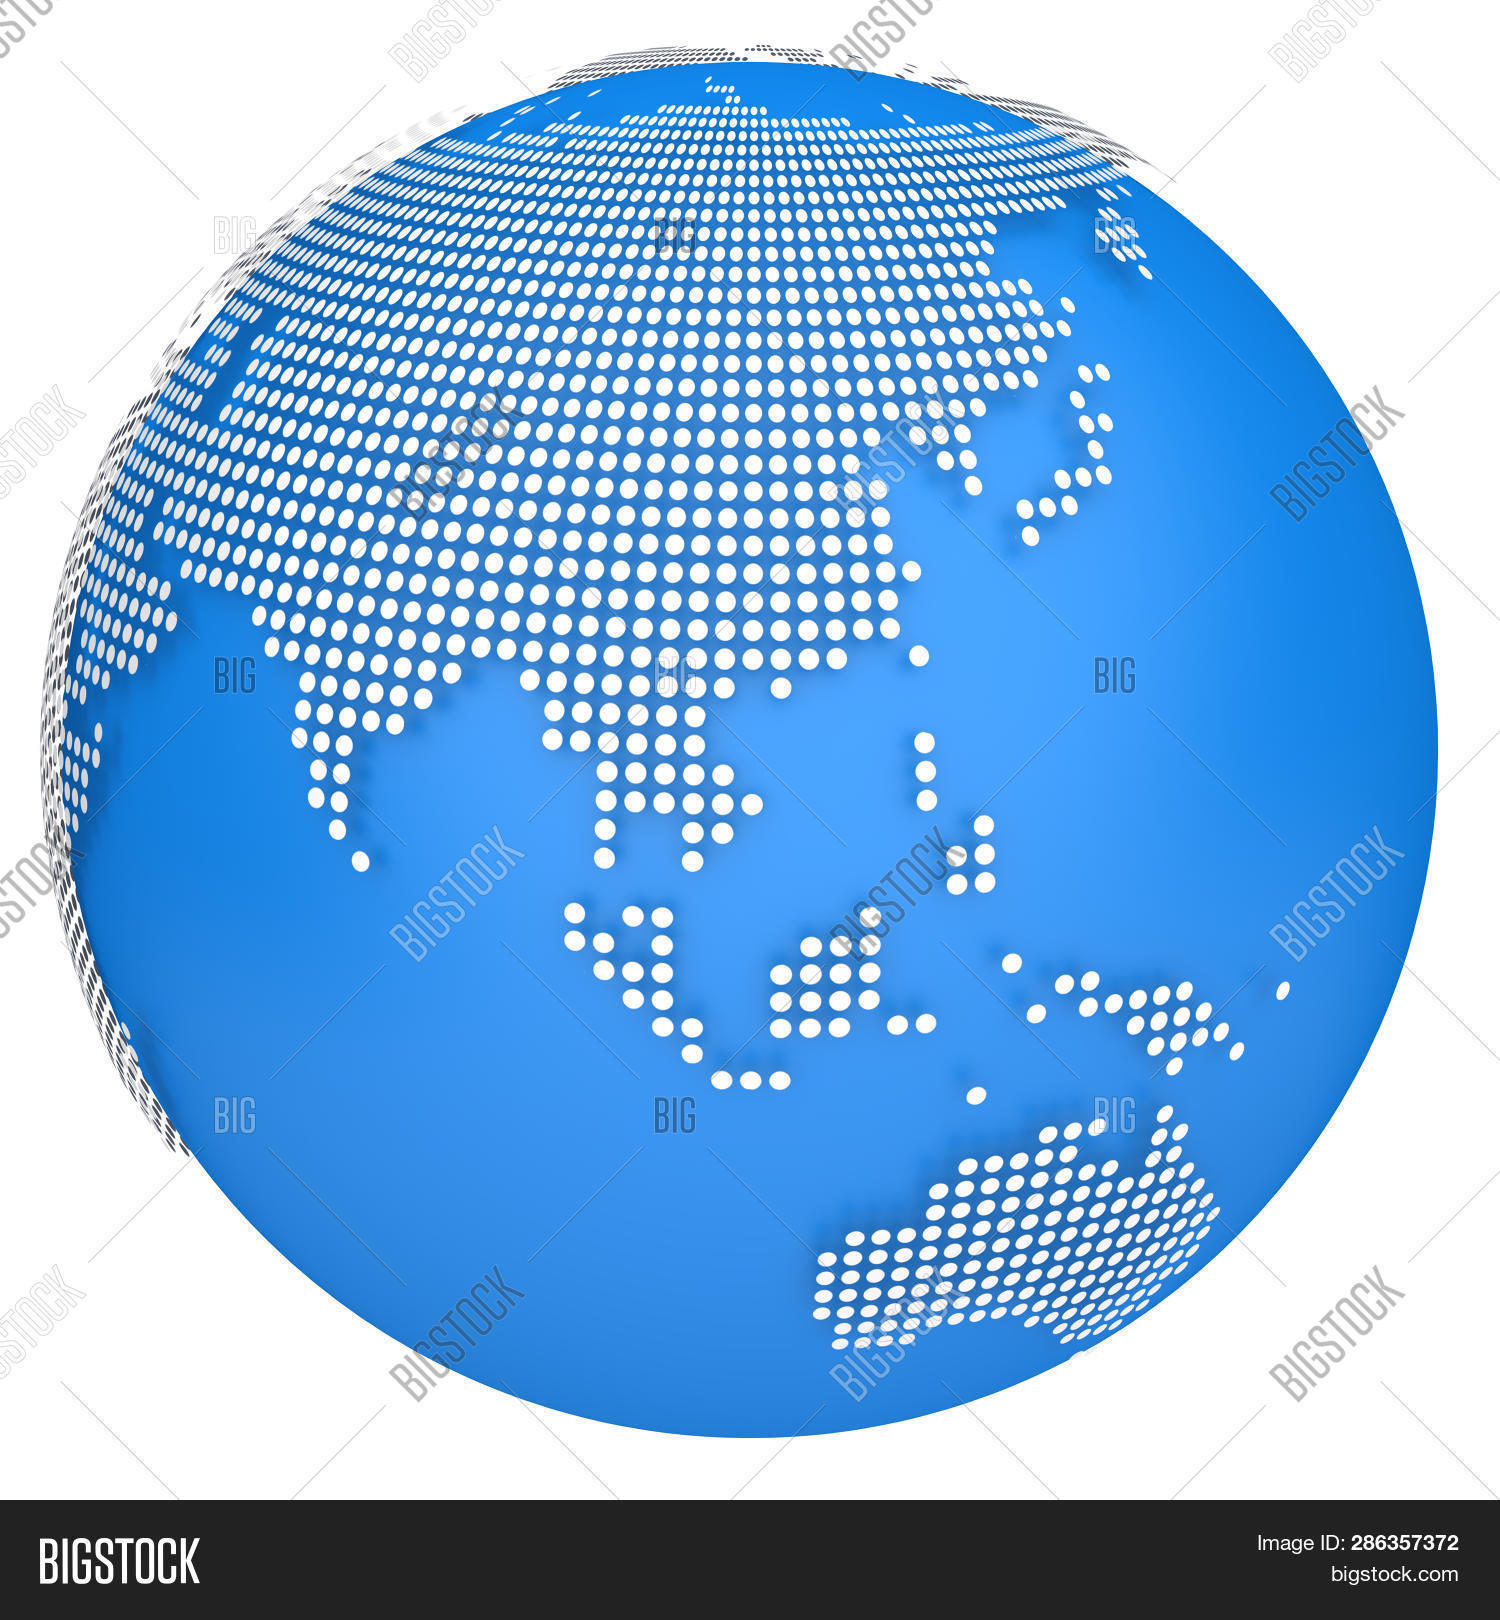 Australia Map Globe.Earth Map Globe 3d Image Photo Free Trial Bigstock